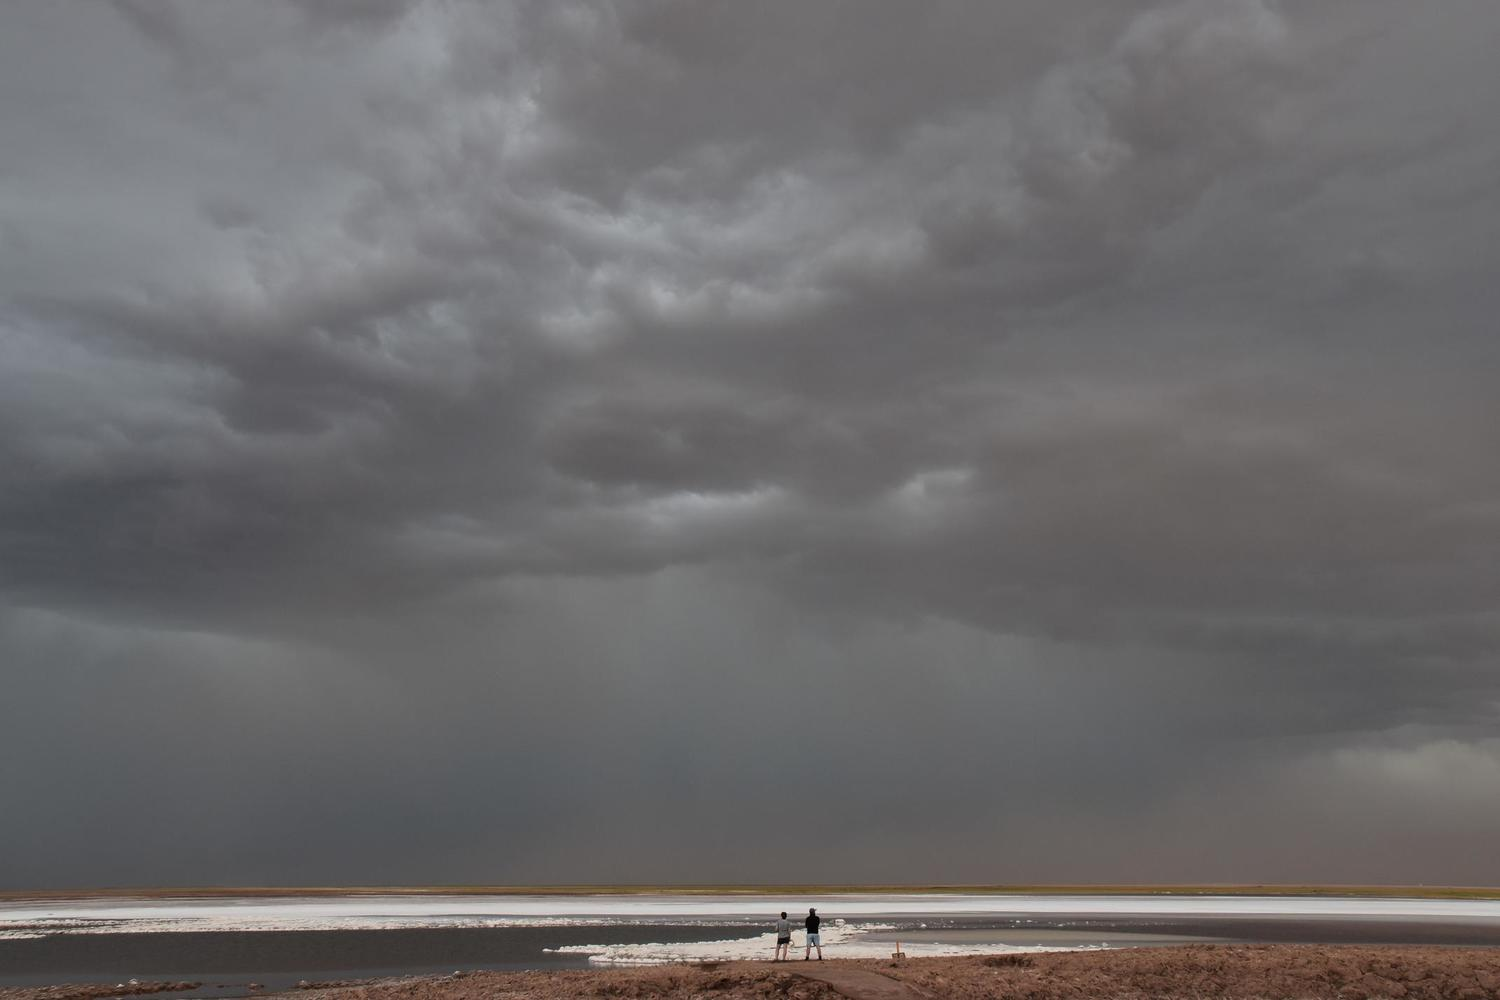 An approaching storm in the driest non-polar desert in the world - Chile's Atacama